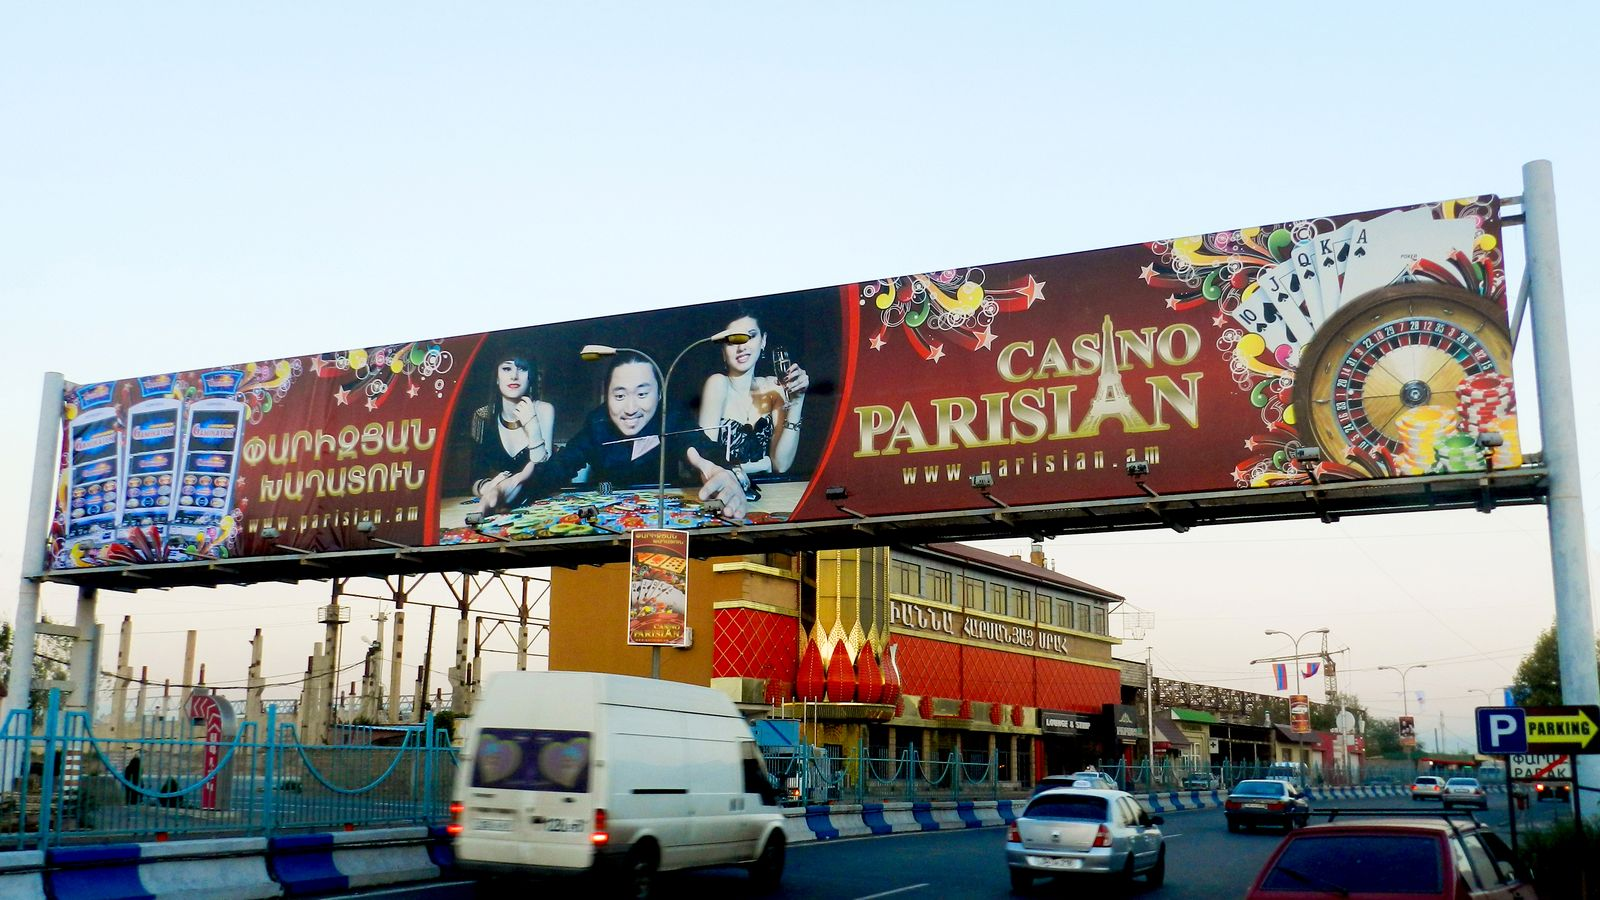 large casino billboard